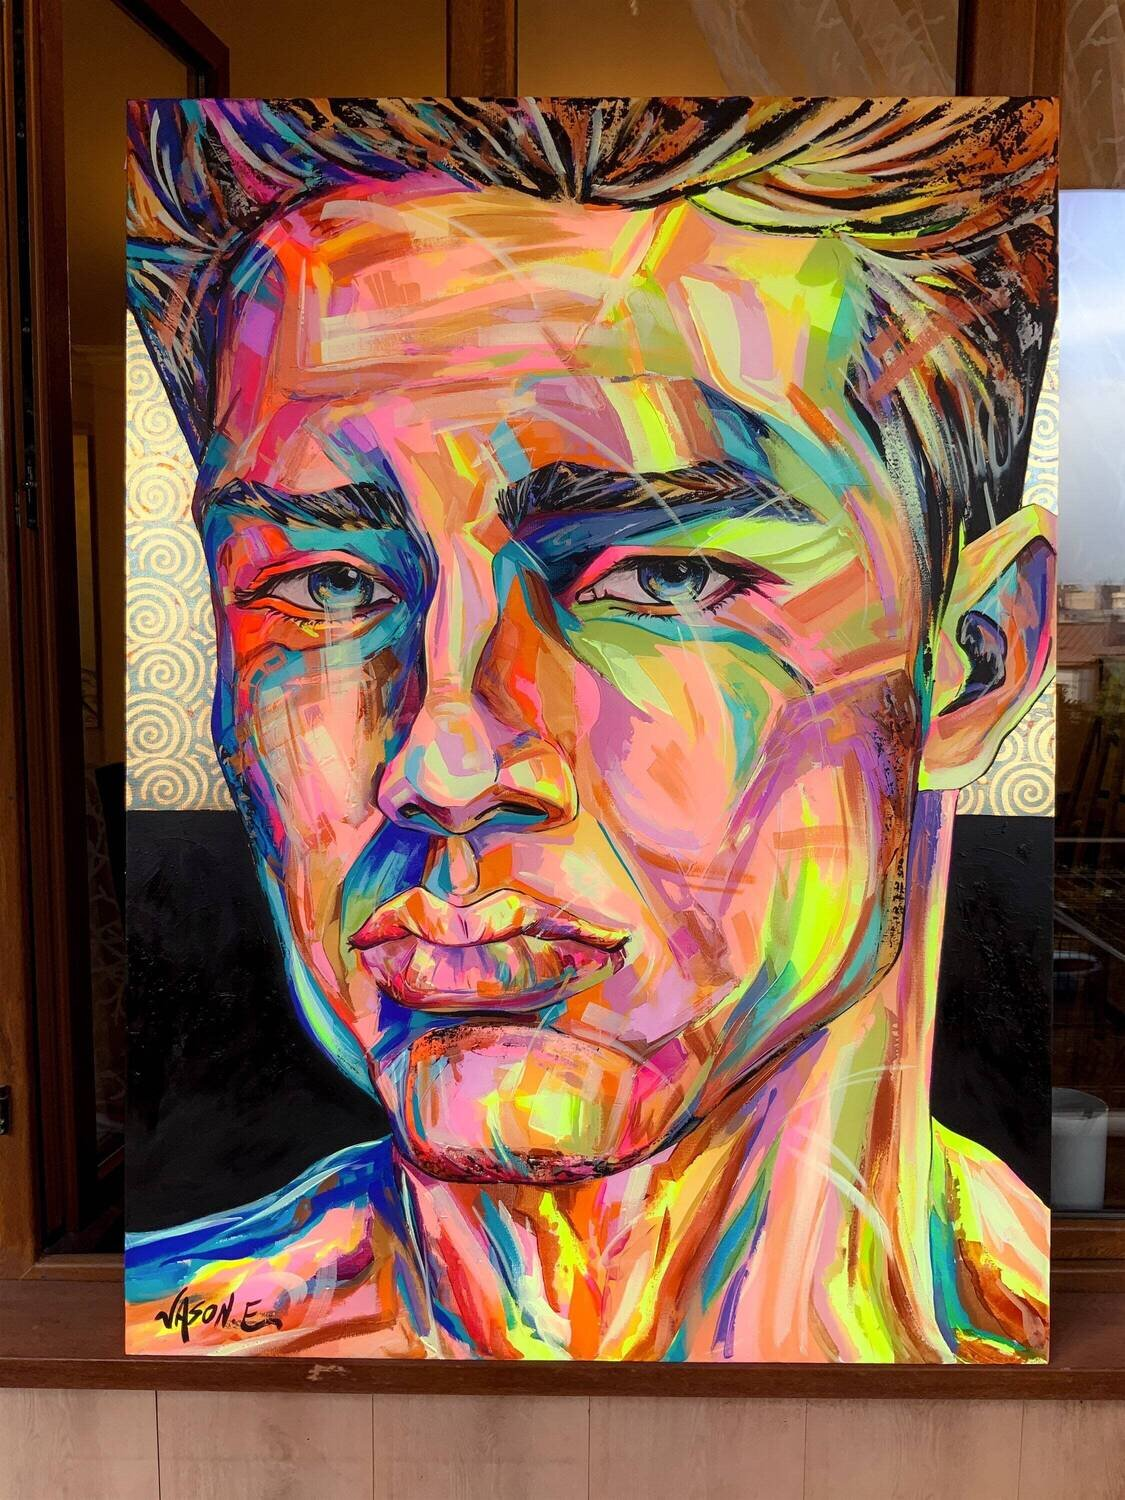 Gay Male ORIGINAL PAINTING Spontaneous Realism Portrait Oil Painting with Patterned Gold Leaf LGBTQ Homosexual Art